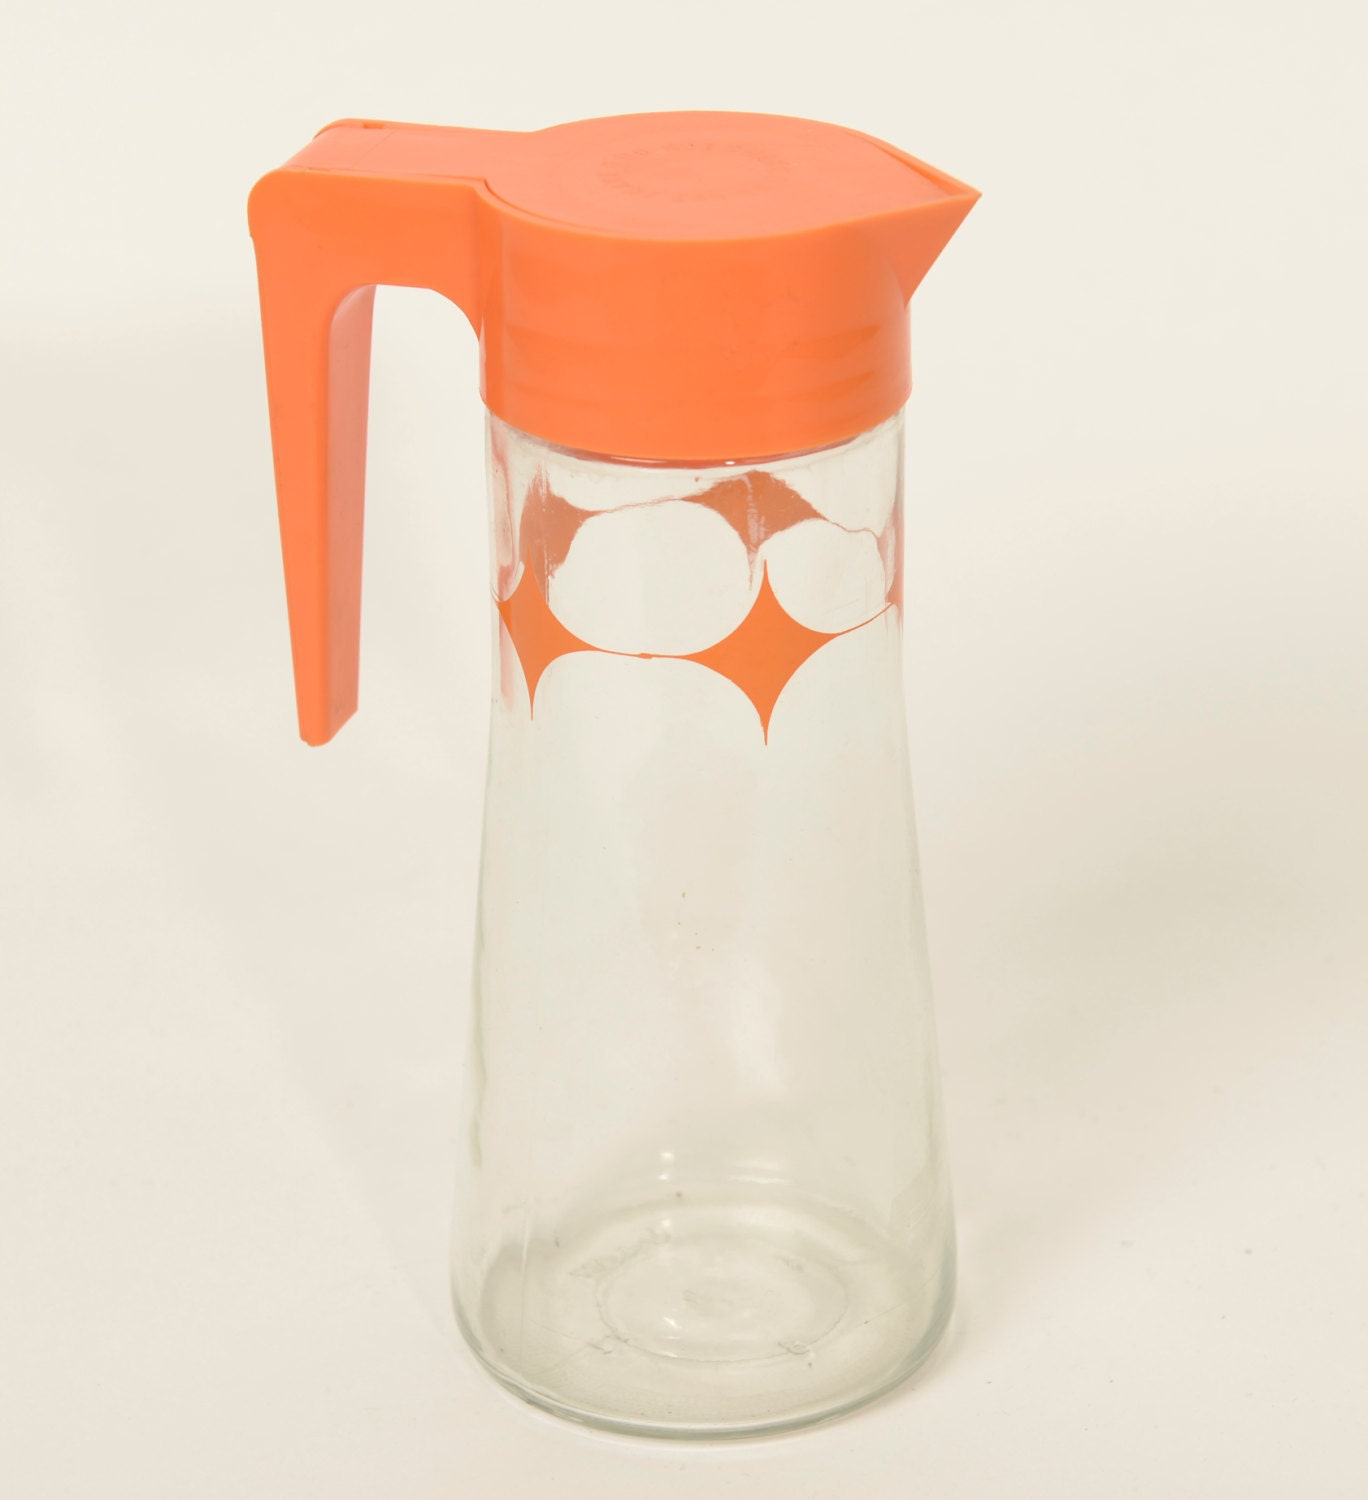 Orange Juice Pitcher By Anchor Hocking 60s Atomic Stars